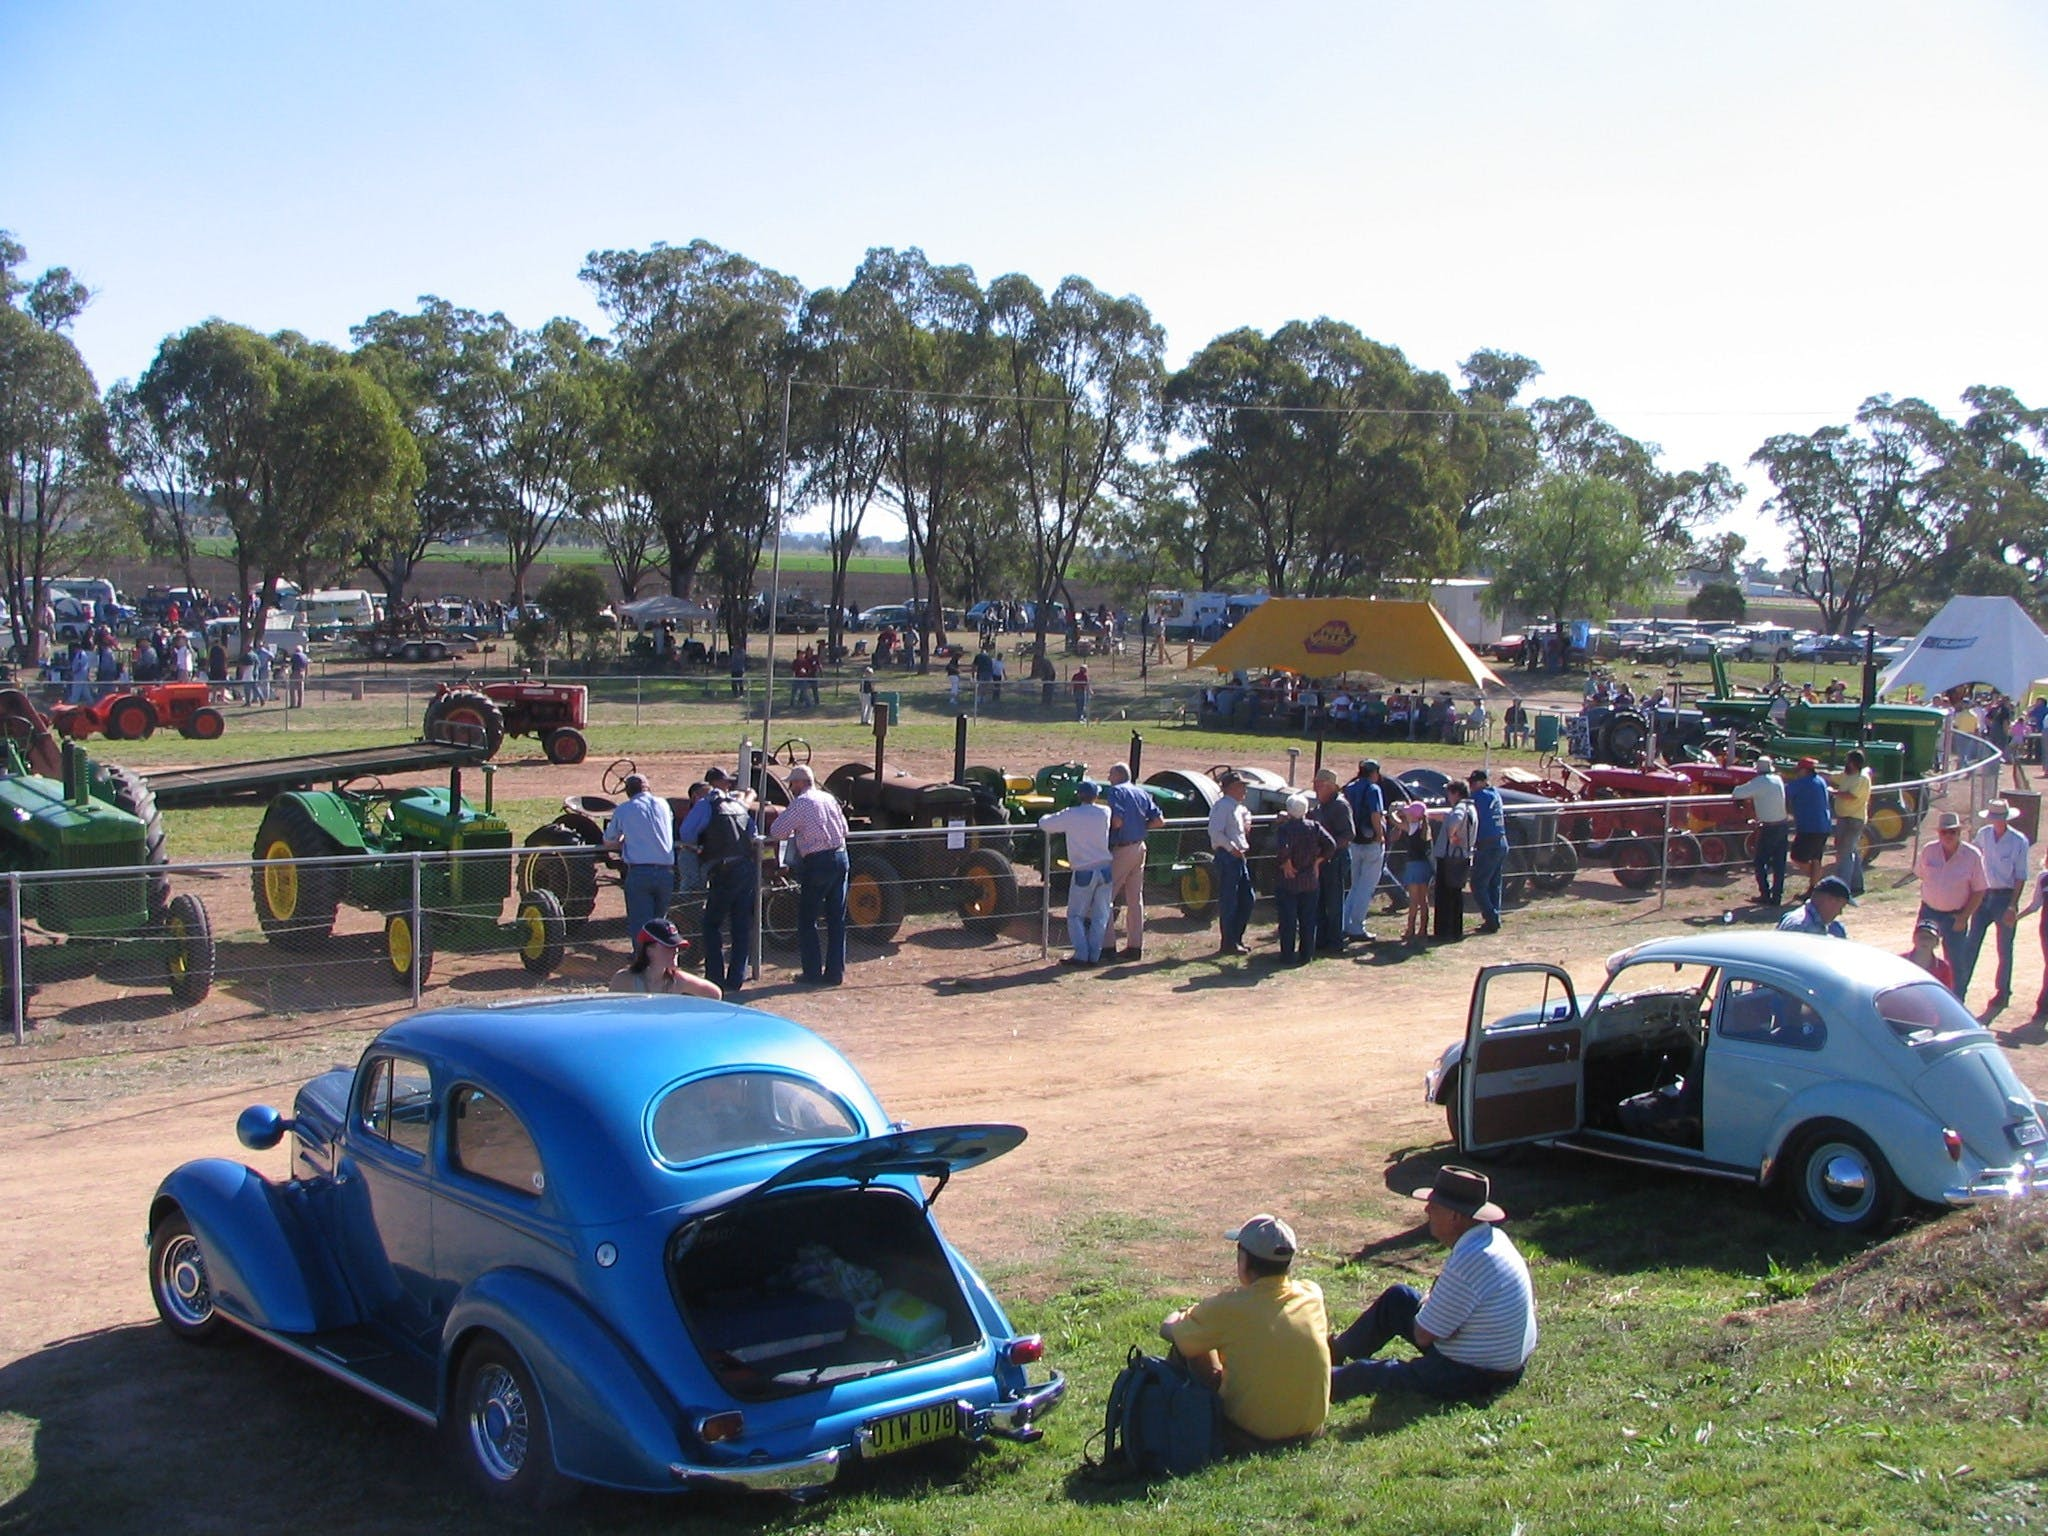 Quirindi Rural Heritage Village - Vintage Machinery and Miniature Railway Rally and Swap Meet - Accommodation Directory